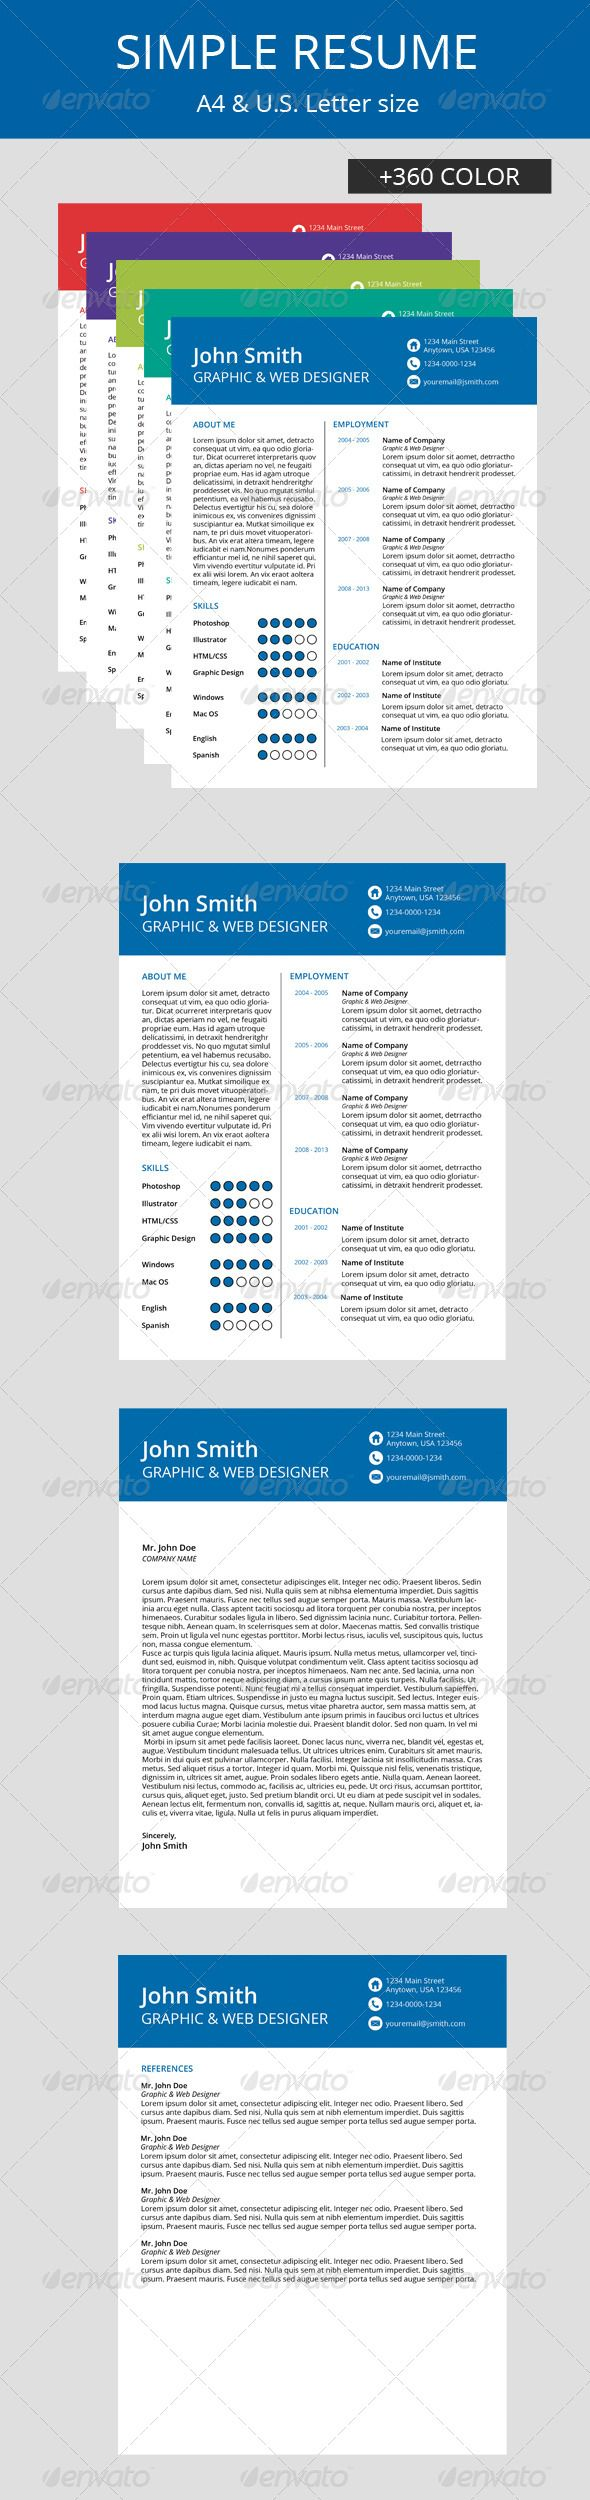 Resume Text Size Simple Resume  Simple Resume Letter Size And A4